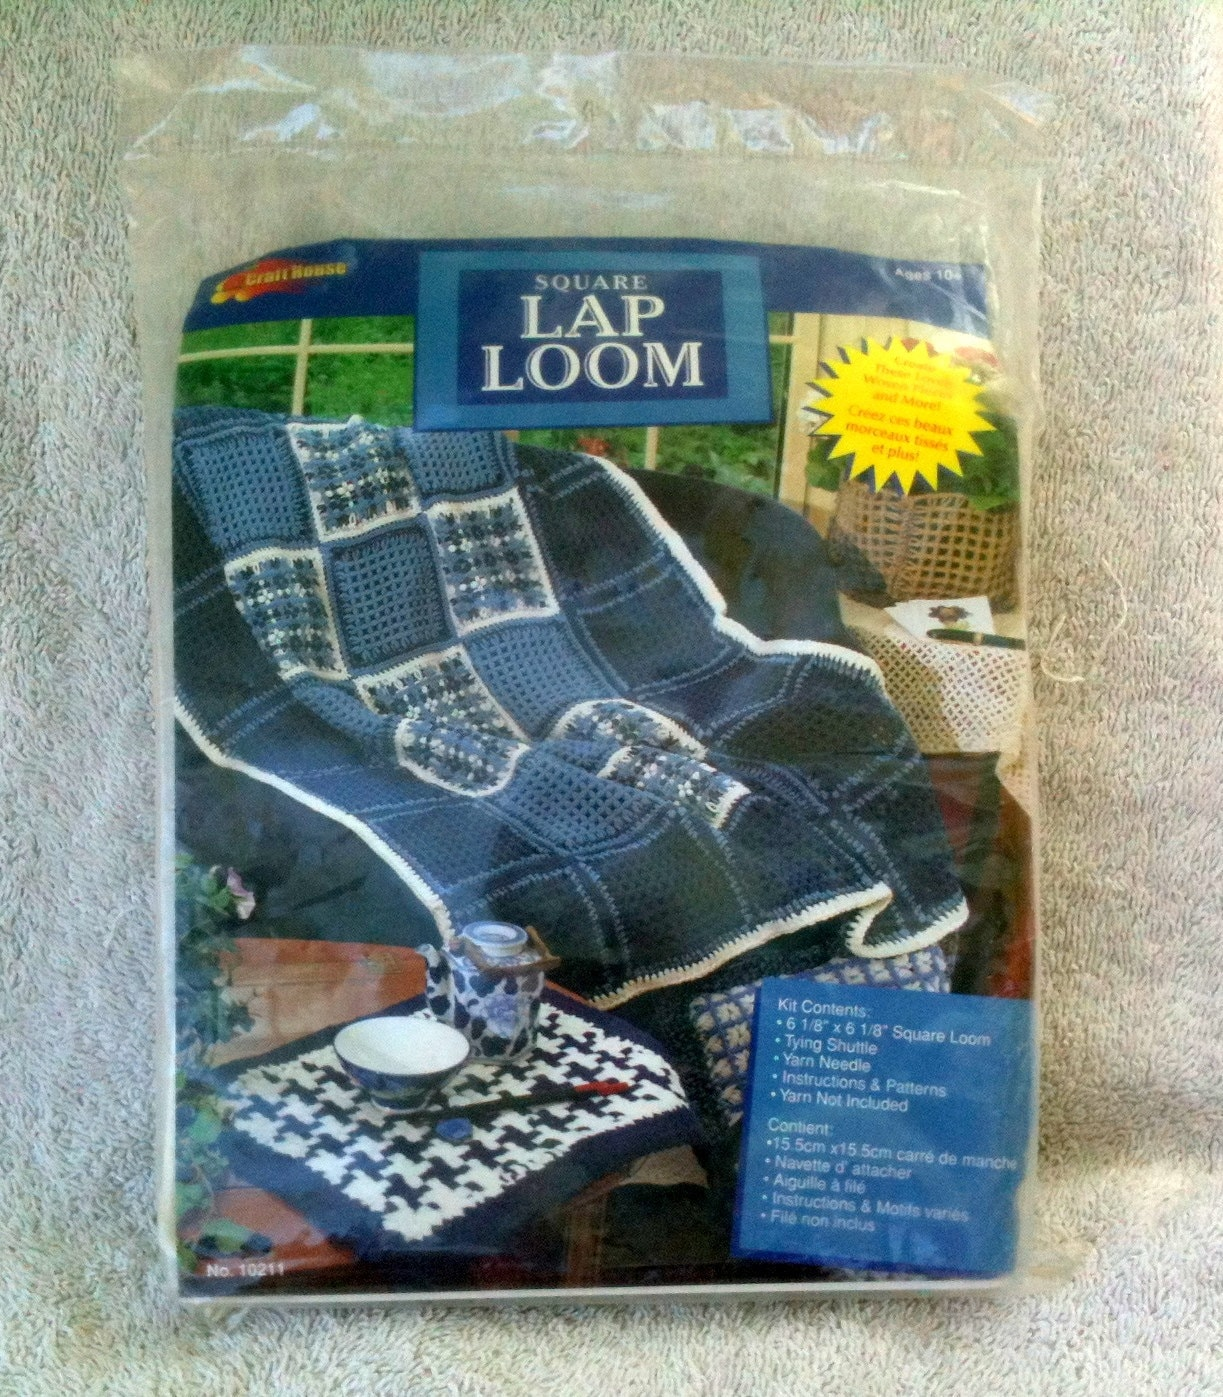 Craft House Beginners Lap Loom Square Lap Loom New Afghan